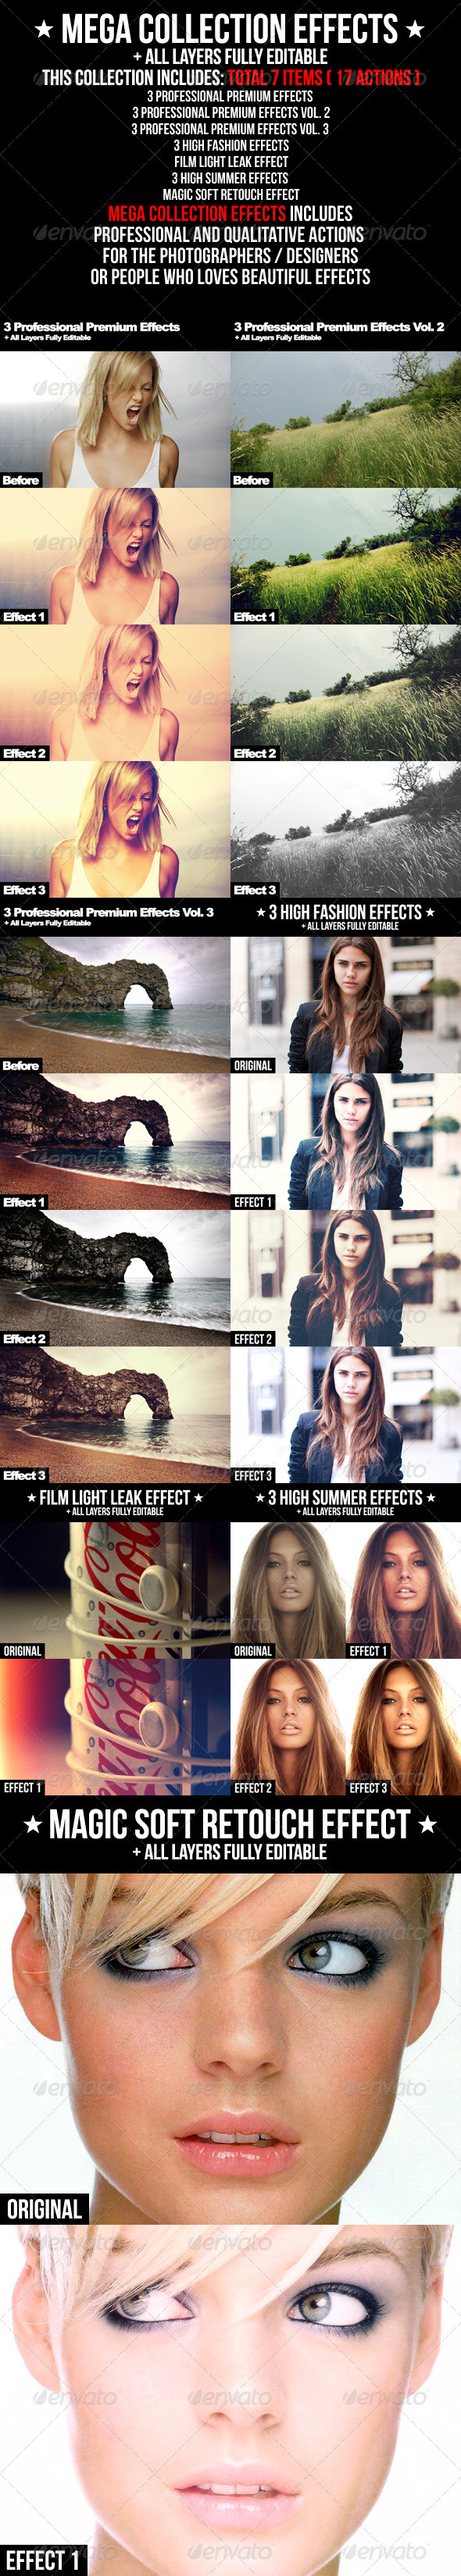 Graphic River Mega Collection Effects Add-ons -  Photoshop  Actions  Photo Effects 2112444